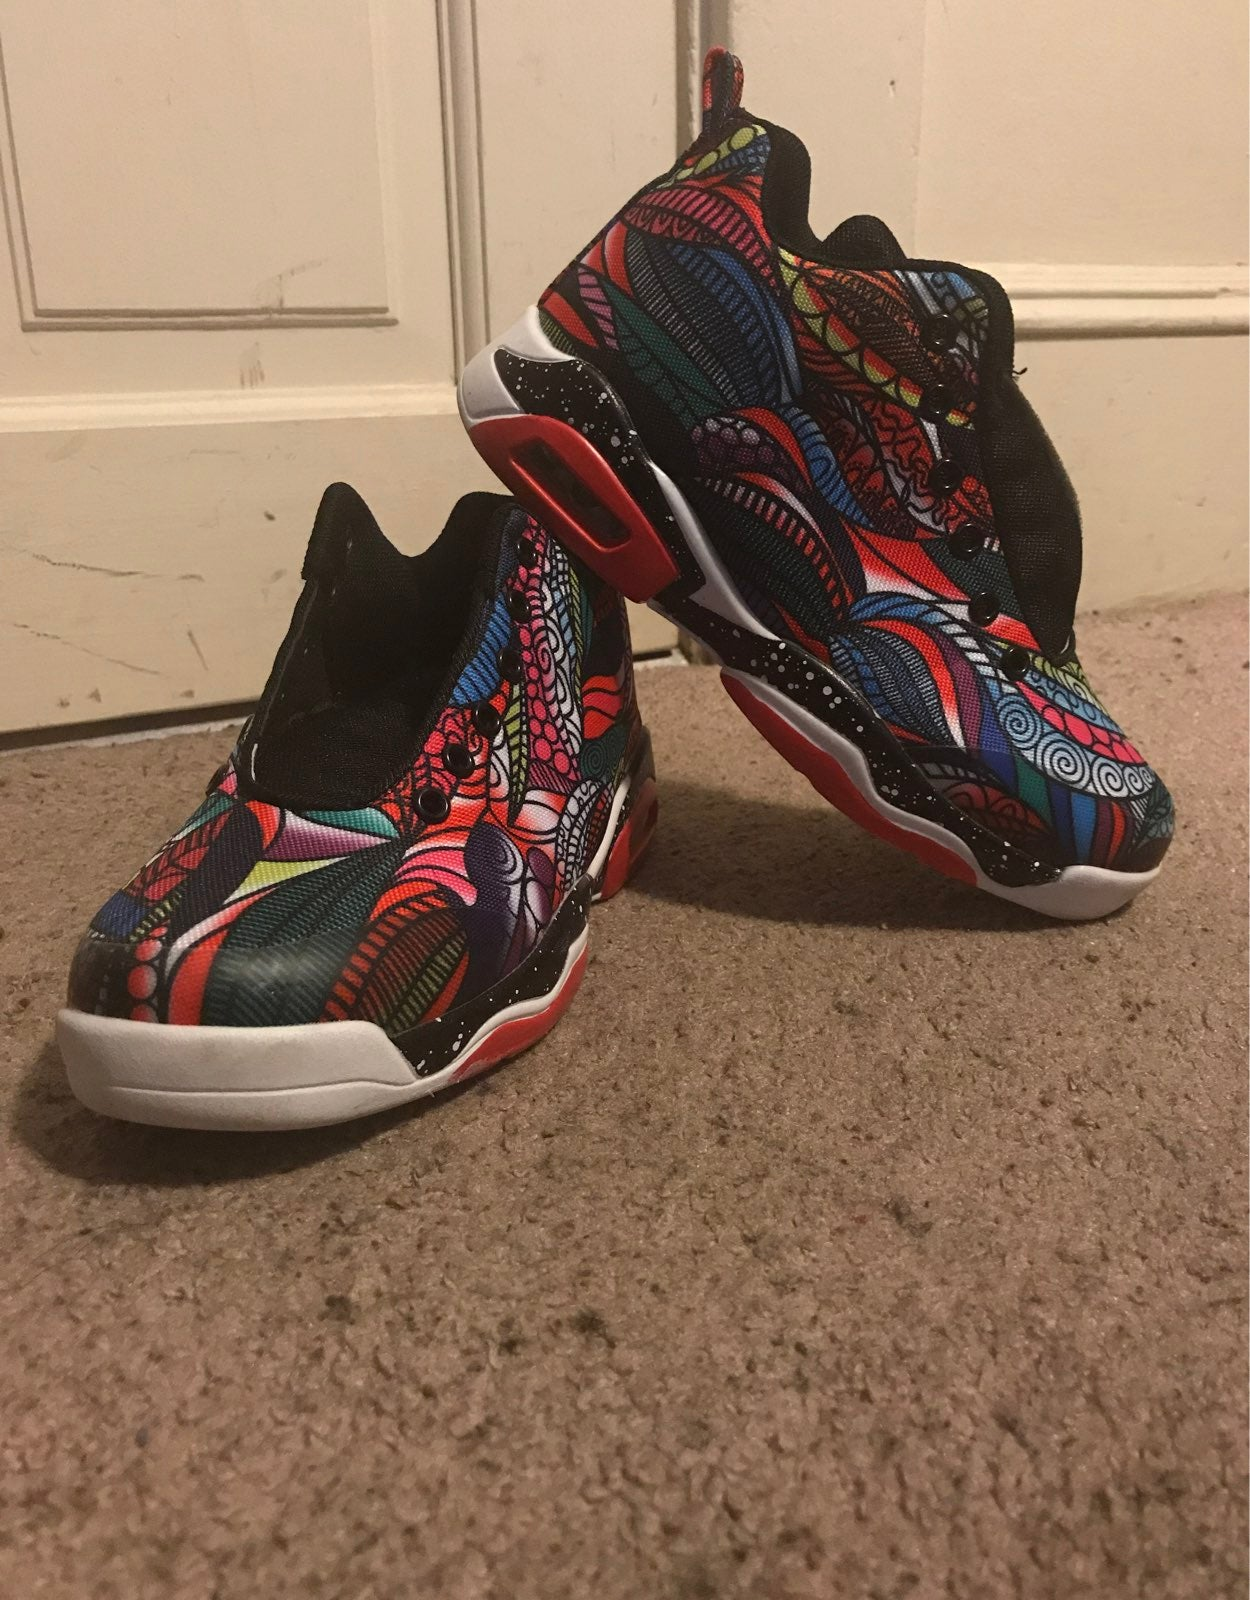 Colorful jordan shoe